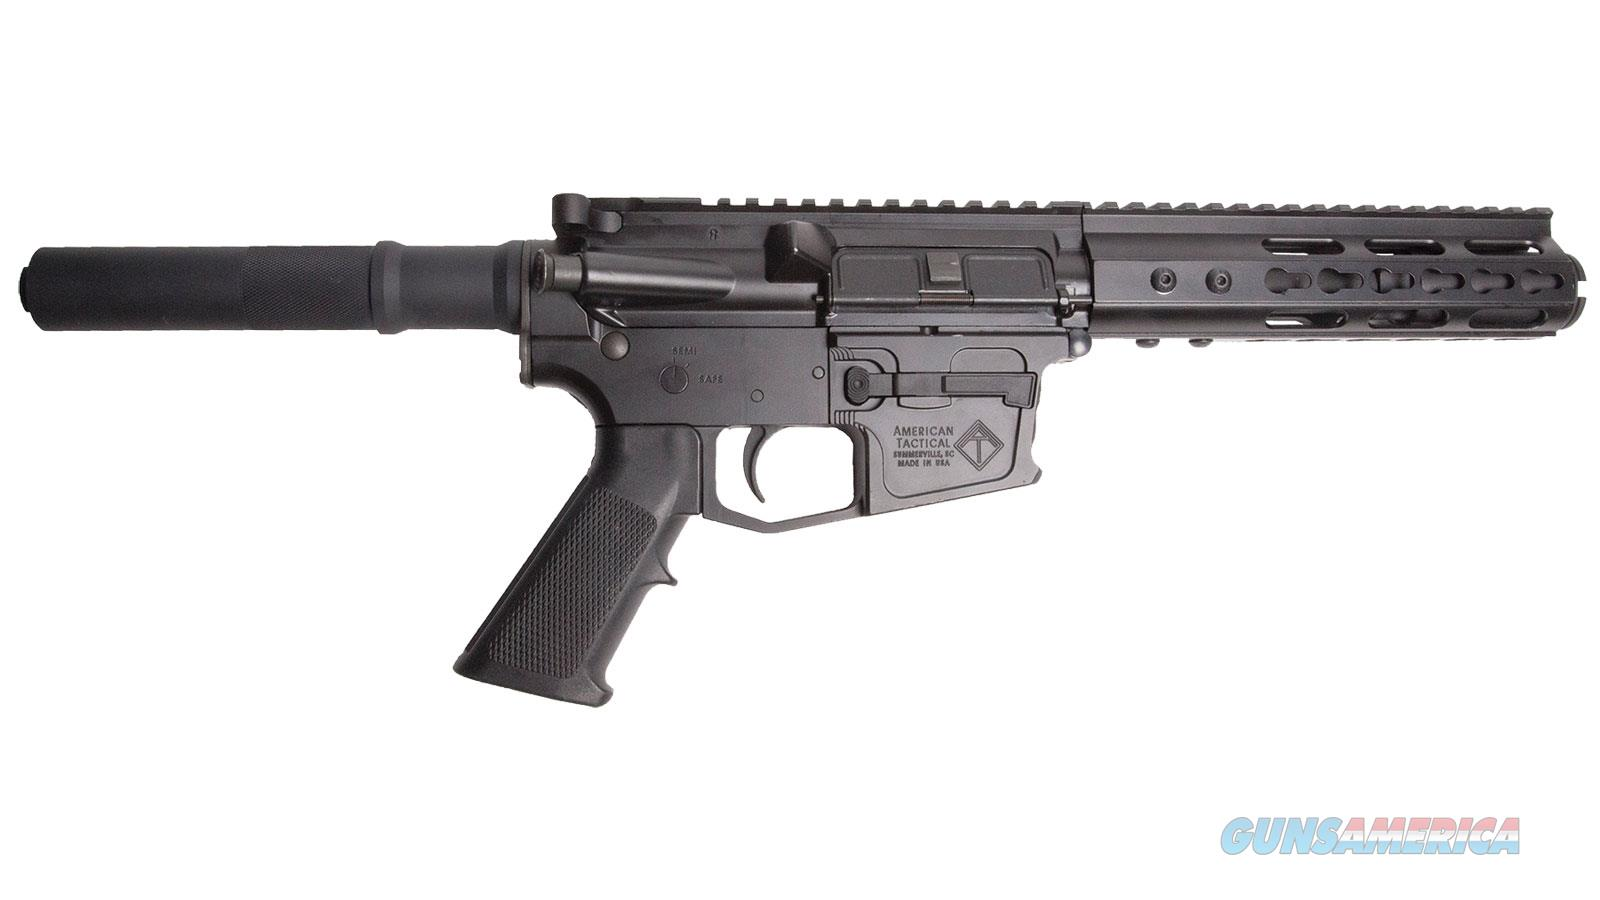 AMERICAN TACTICAL ATI-15 9MM 5.5 17RD MIL-SPORT 7 KEYMOD G15MSP9KM5  Guns > Rifles > American Tactical Imports Rifles